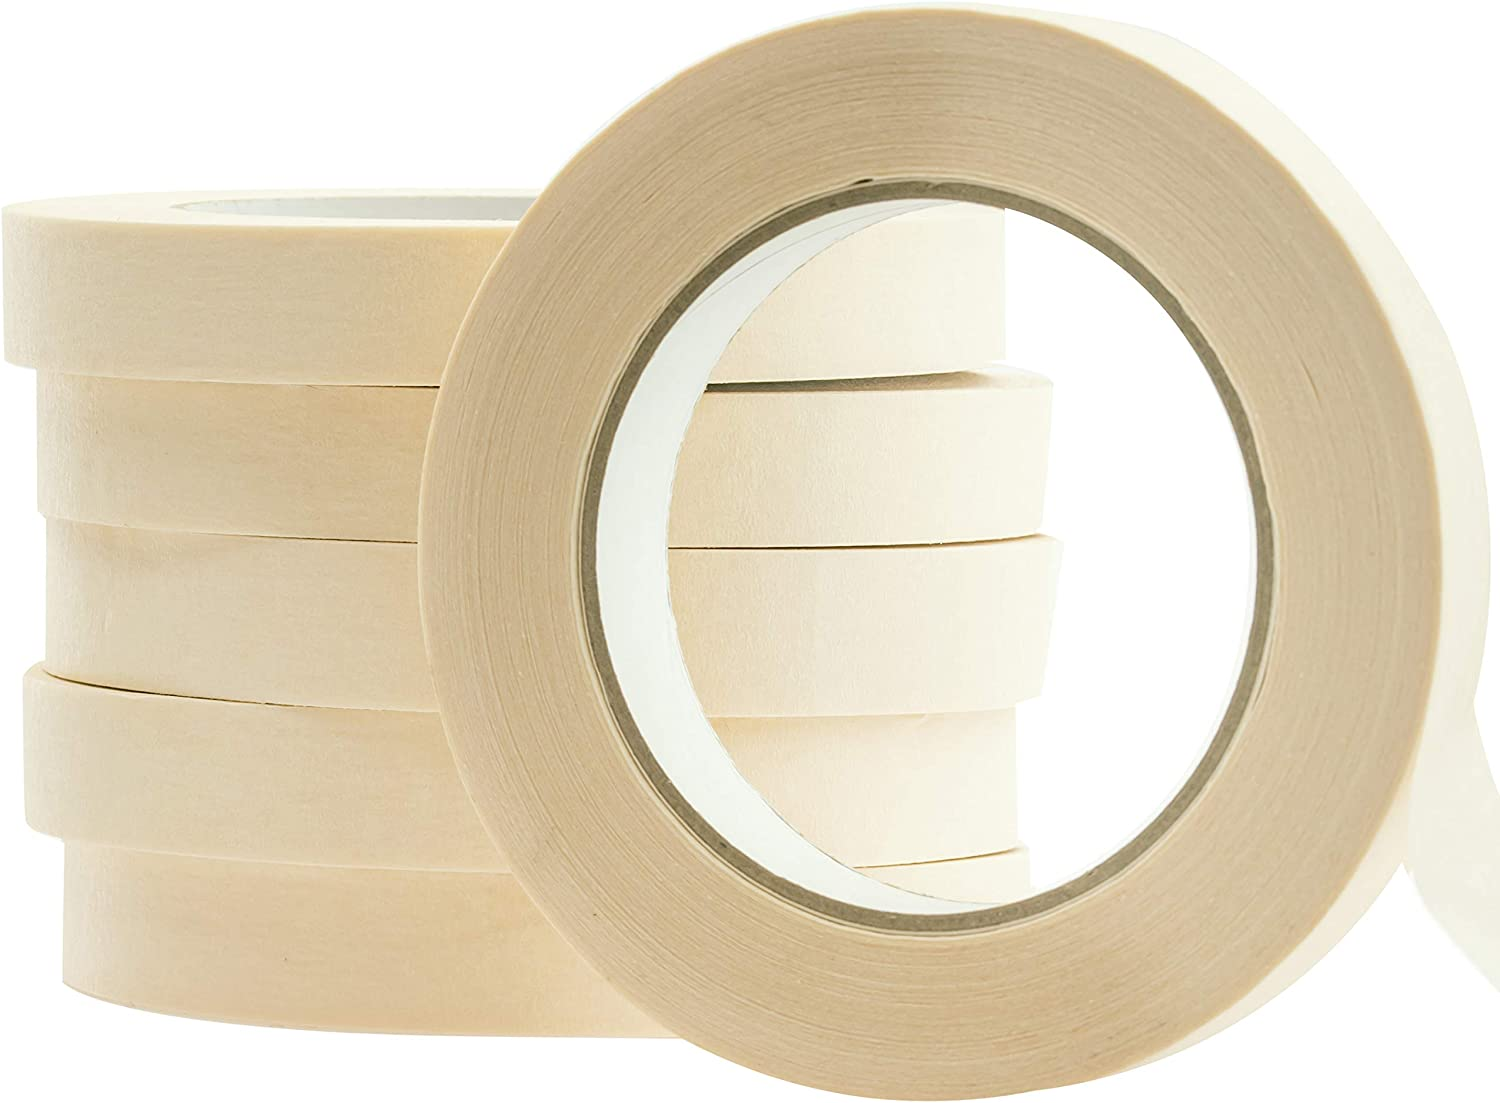 No-Residue 1 Inch, 60 Yard Masking Tape 6 Pk. Easy-Tear, Pro-Grade Removable Painters Tape Great for Home, Office or Commercial Contractor. Clean, Drip-Free Painting with Wide Crepe Paper Rolls